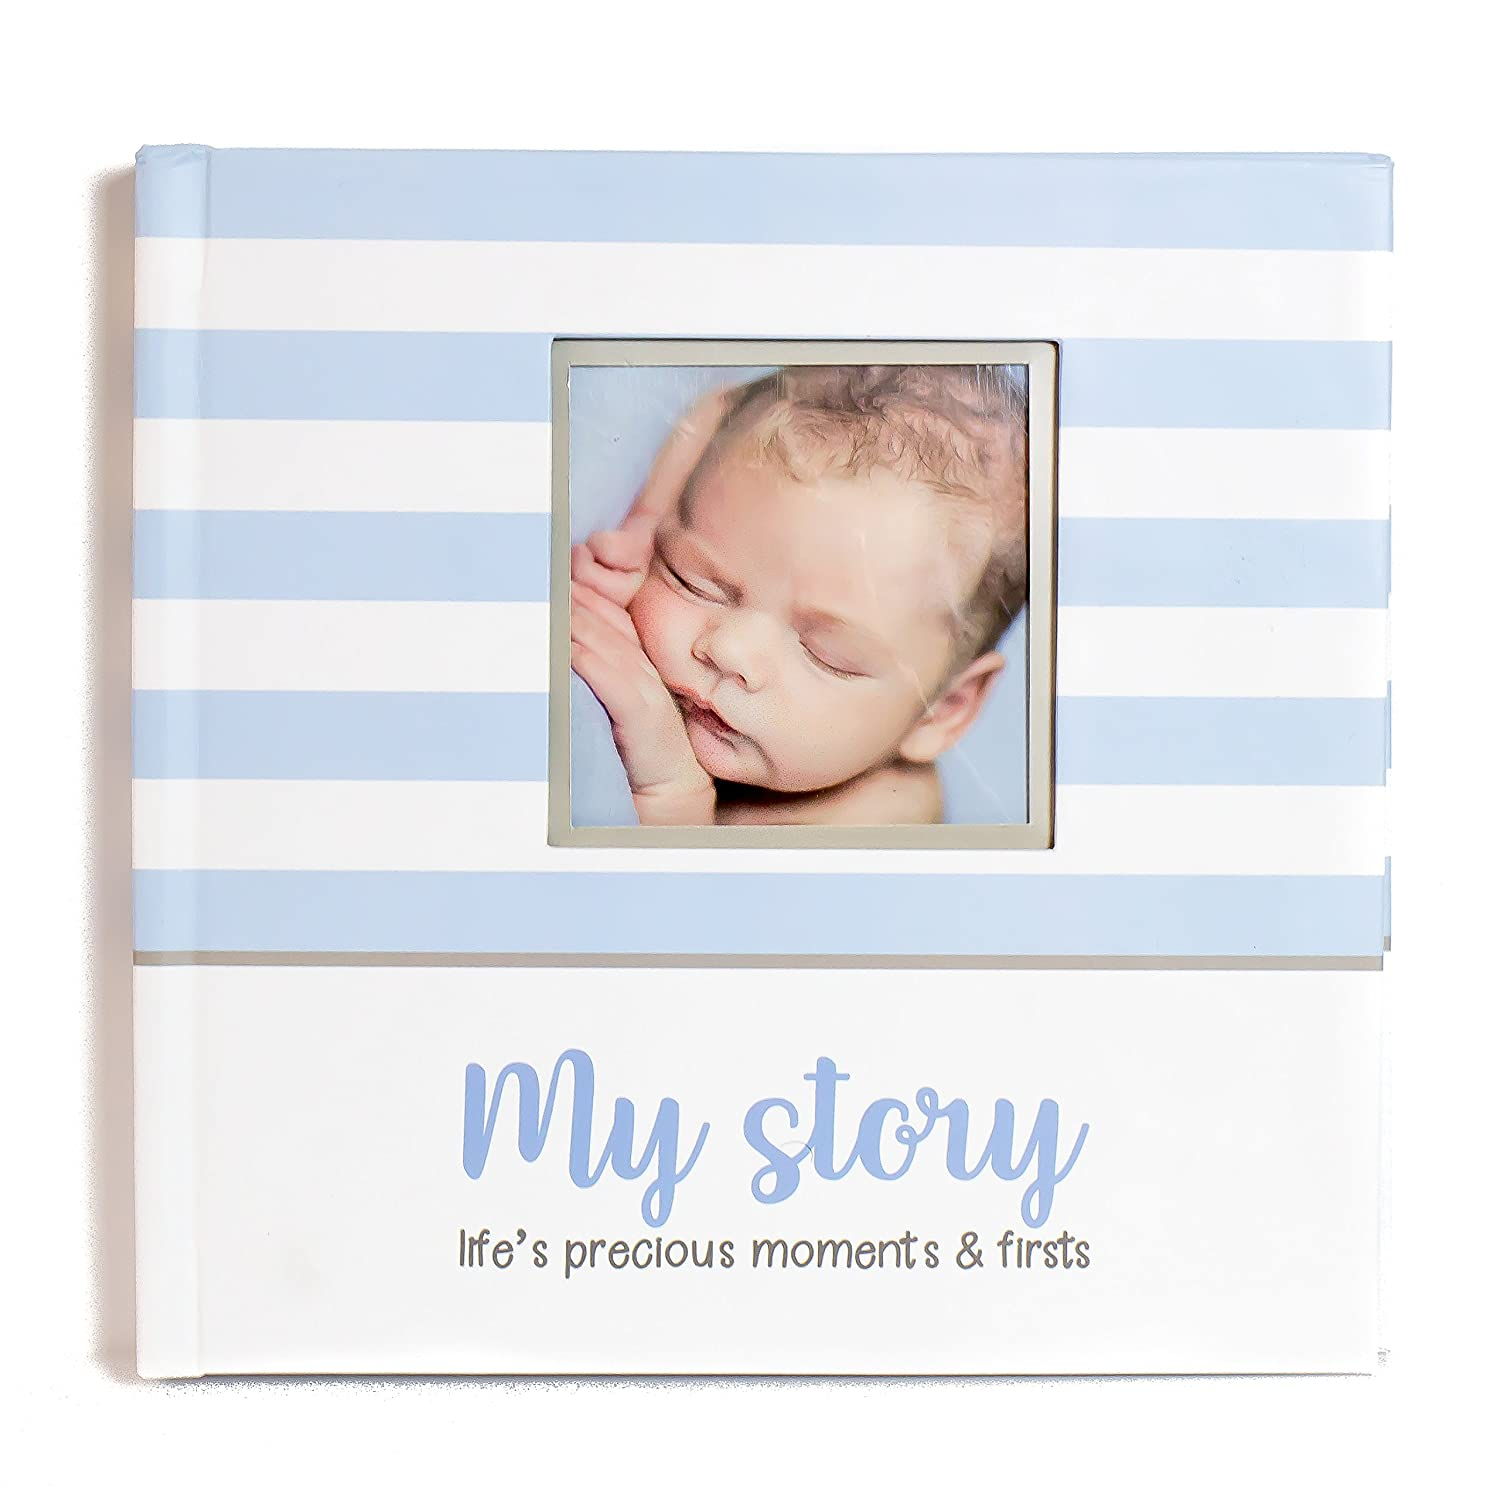 ToddleBee Baby Photo Album Soft Baby Book First Year Baby Photo Book Baby Album Holds 4x6 Pictures for Memory Album Baby Shower My First Book of Photos with Woodland Animals